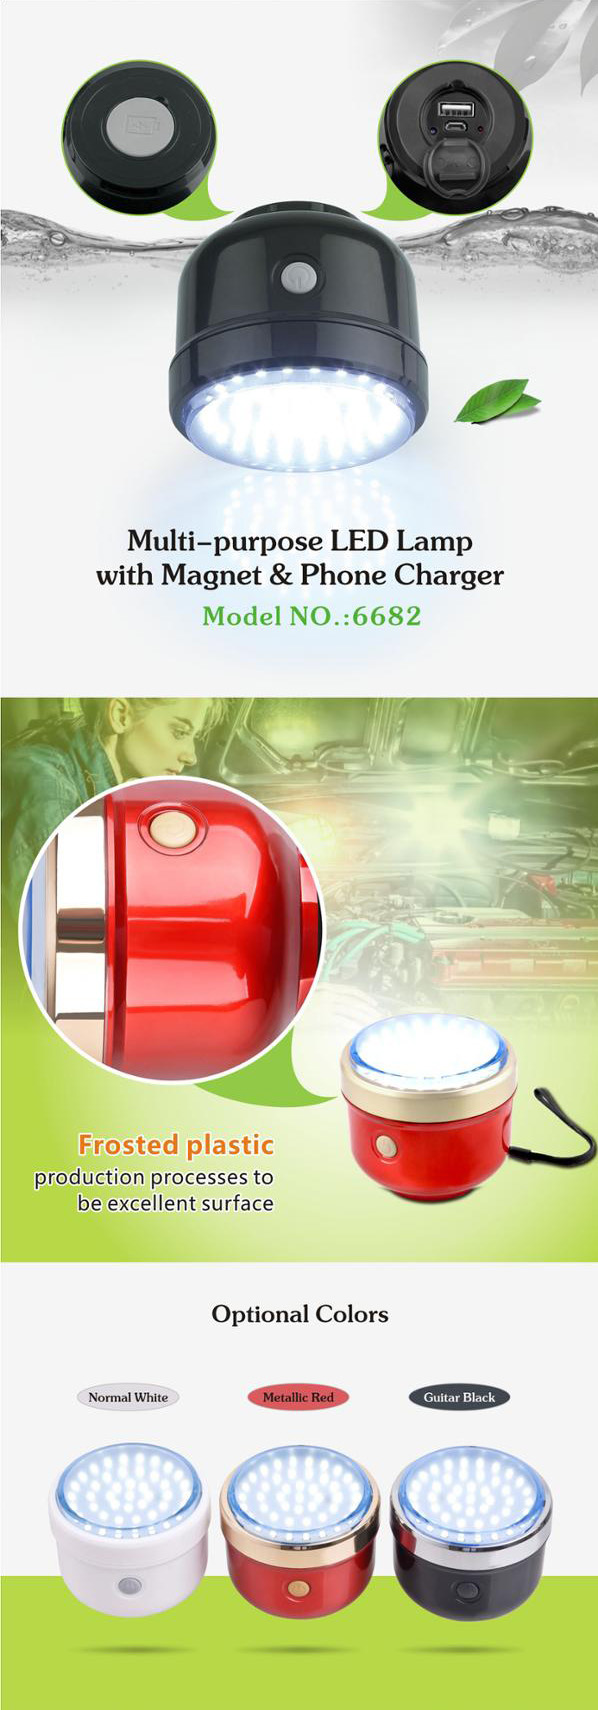 Magnet rechargeable LED portable emergency working camping light